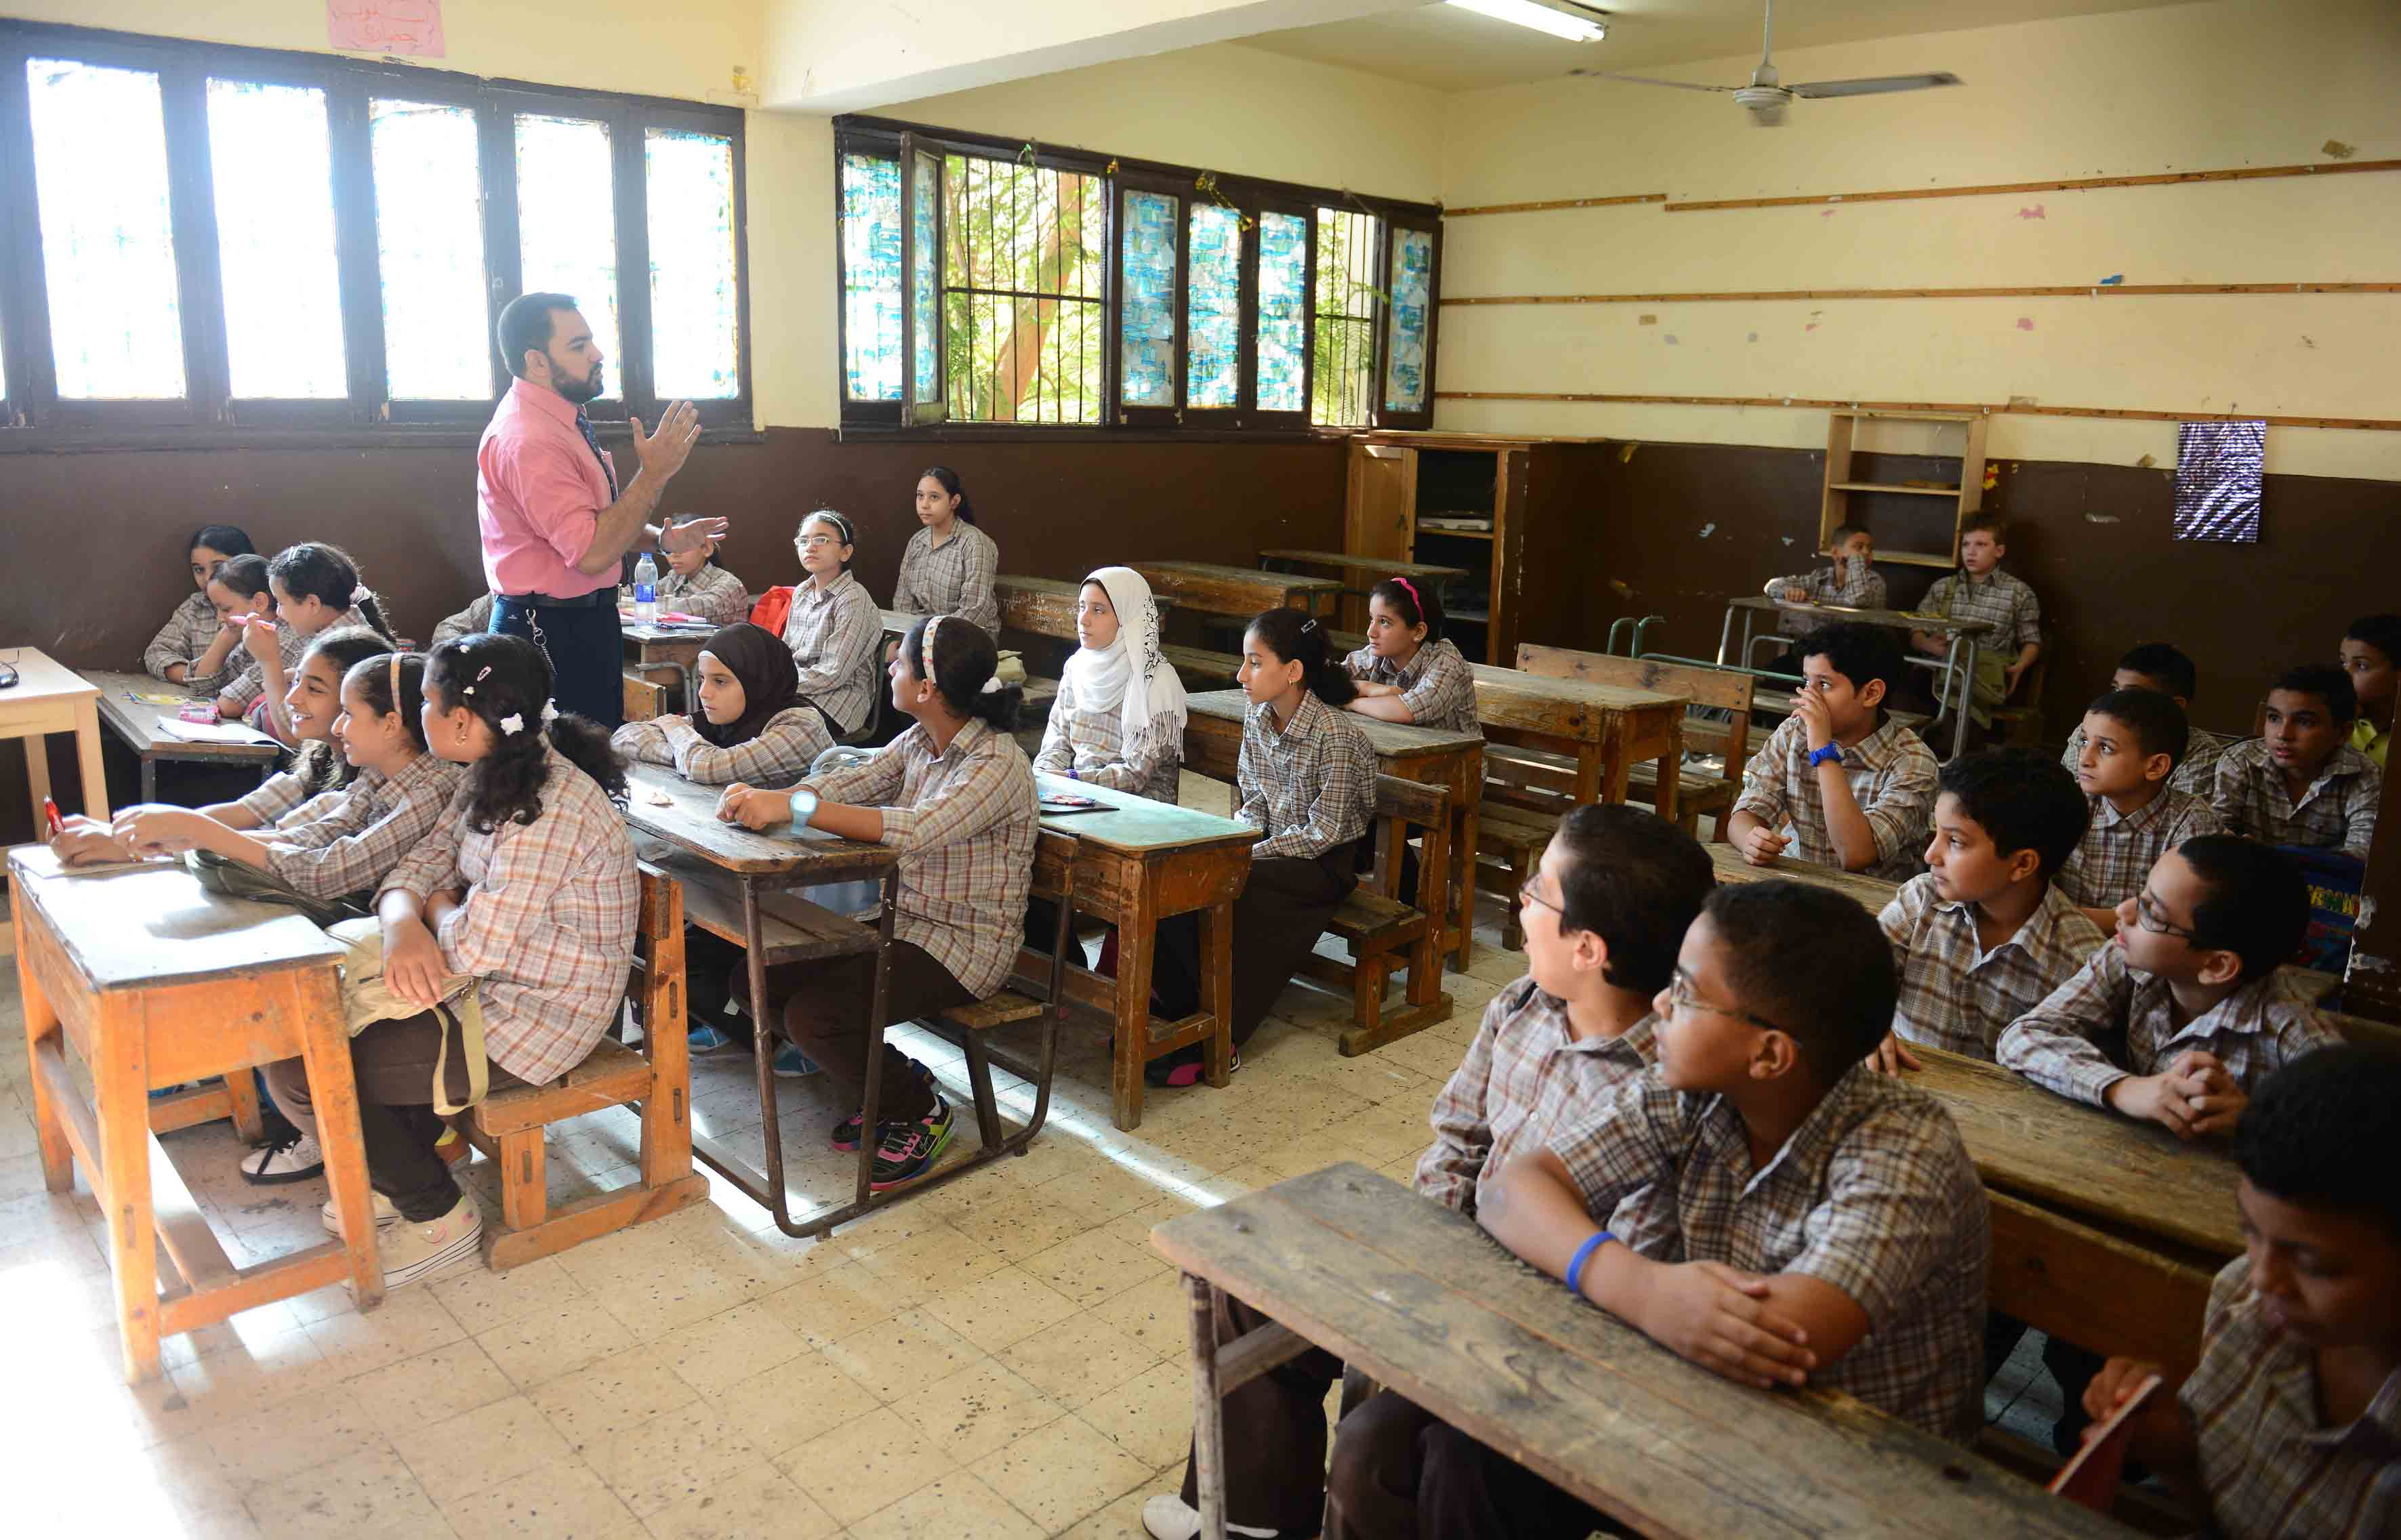 Students at a public school in Cairo. (DNE file photo)